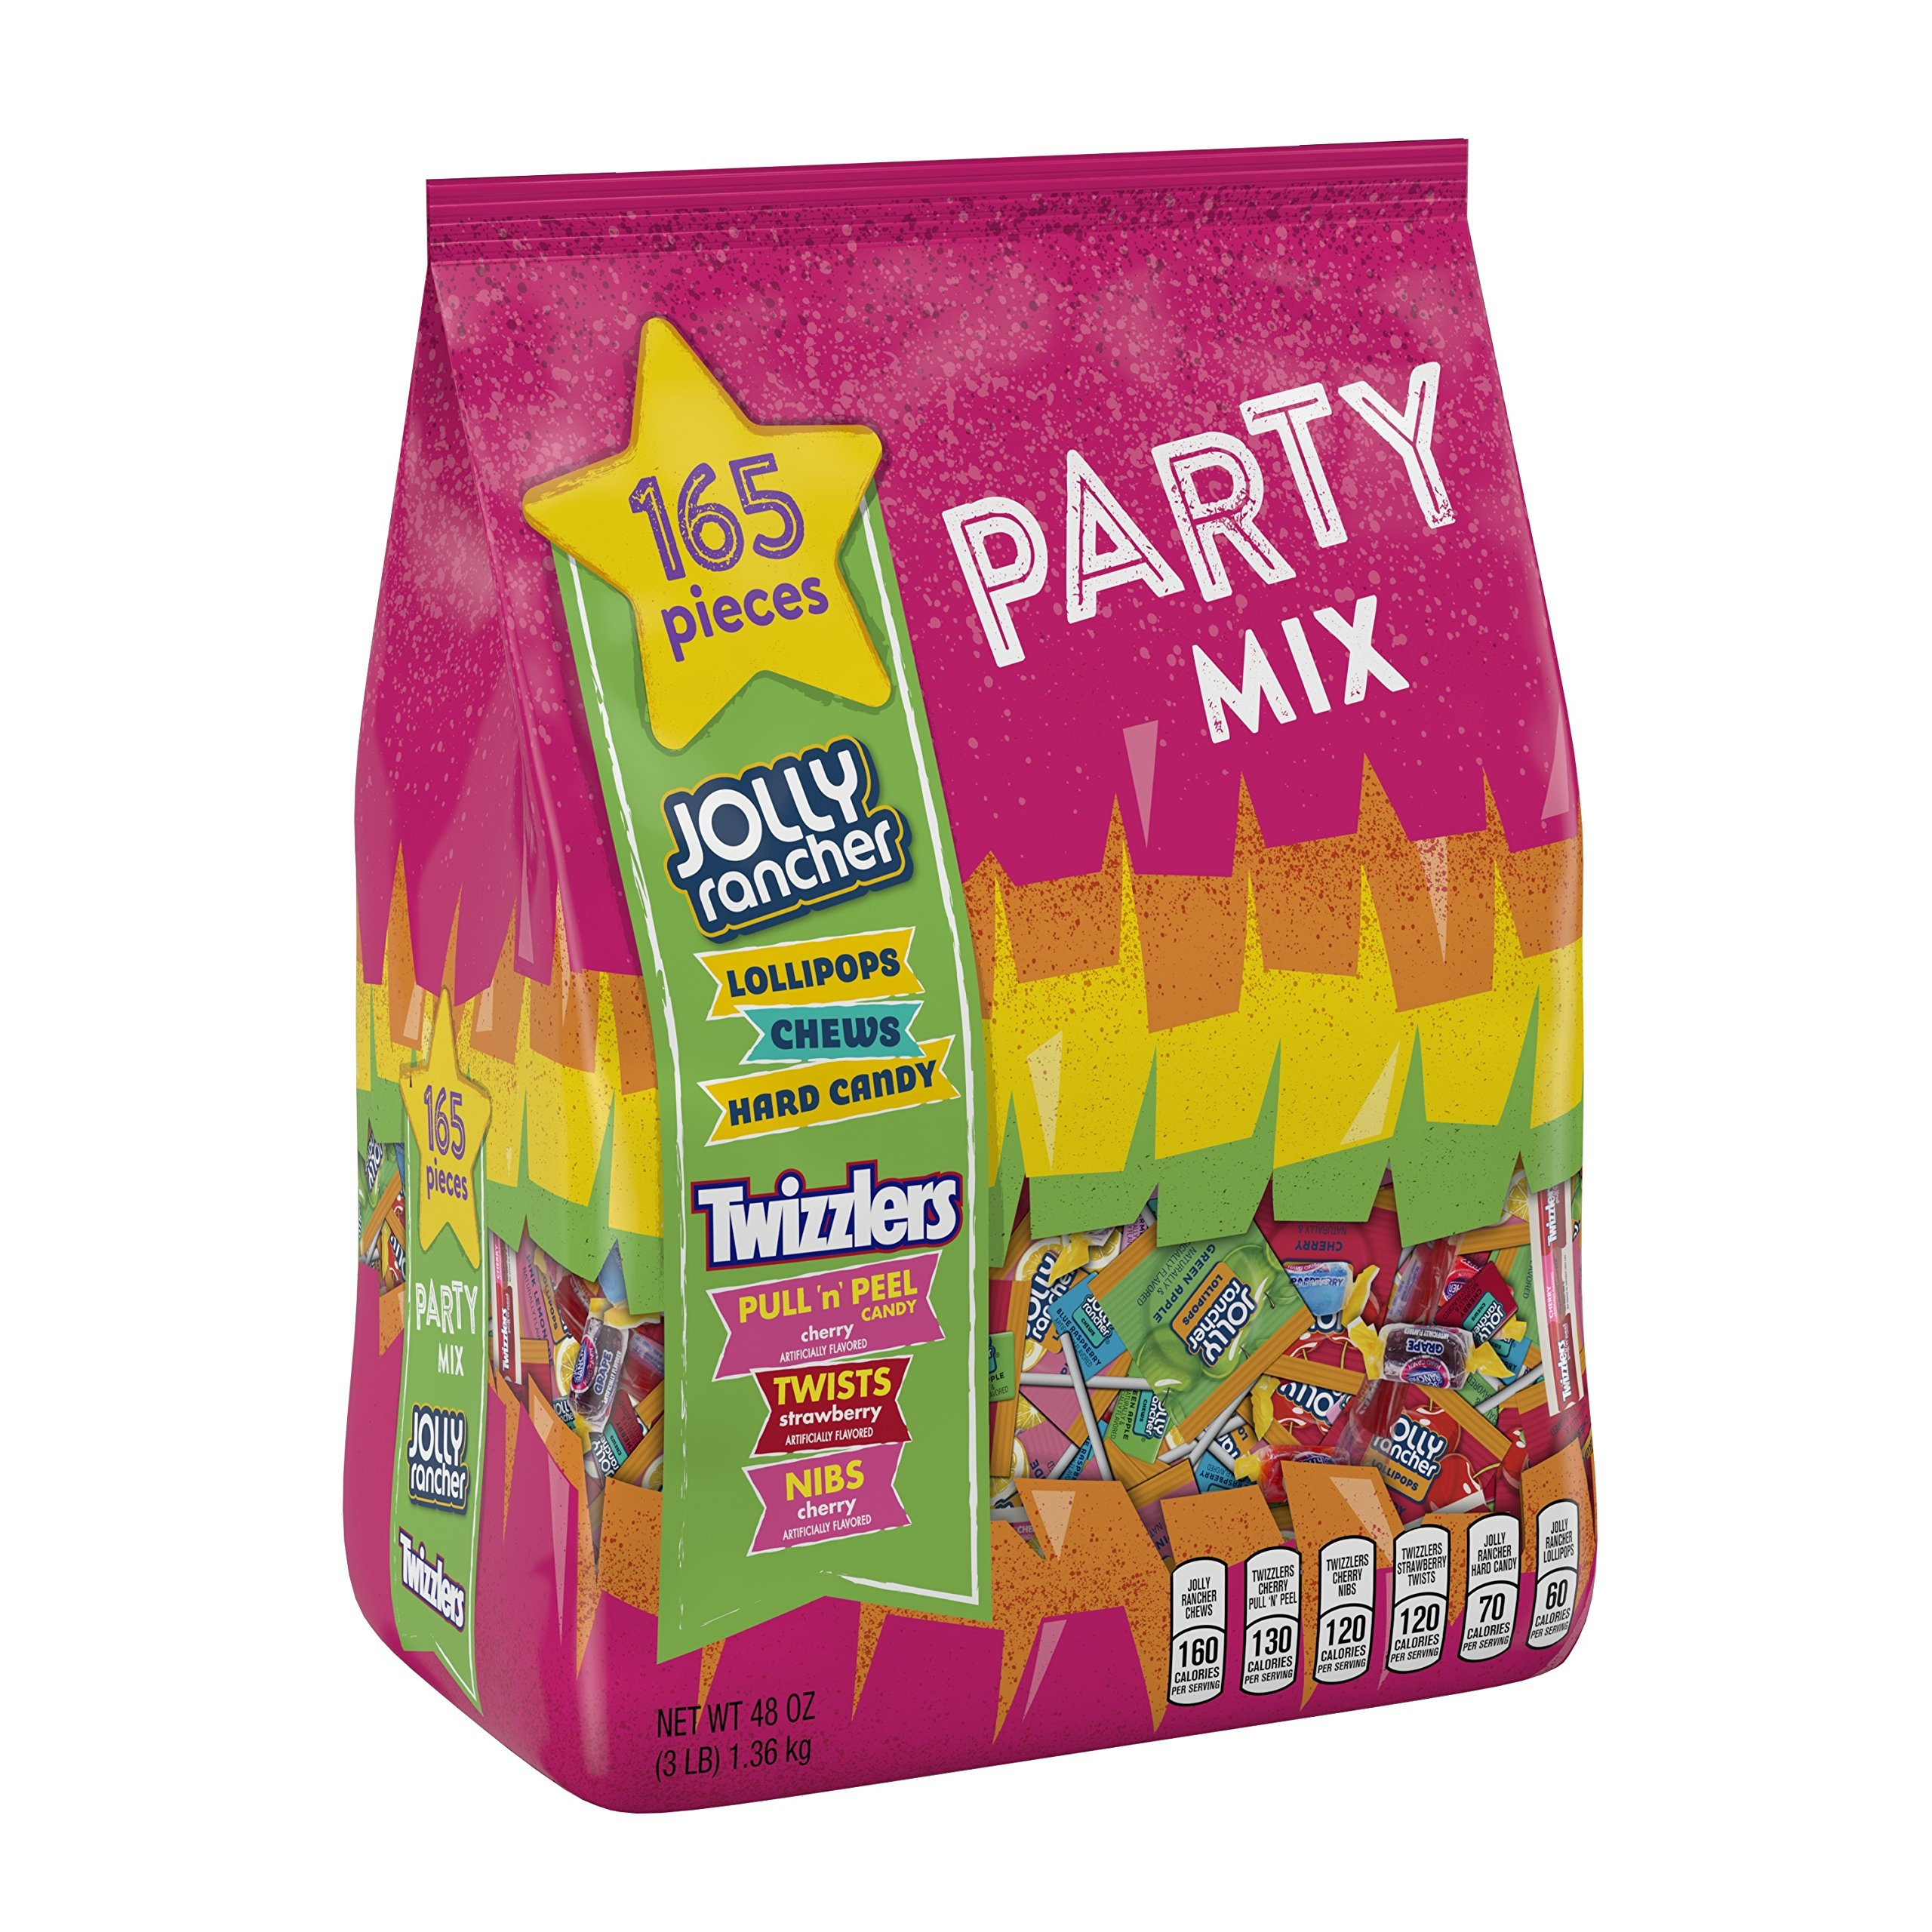 HERSHEY'S Jolly Rancher Twizzlers Candy Variety Pack Fun Size 165 Pieces 48 Oz, Cherry, 1 Count